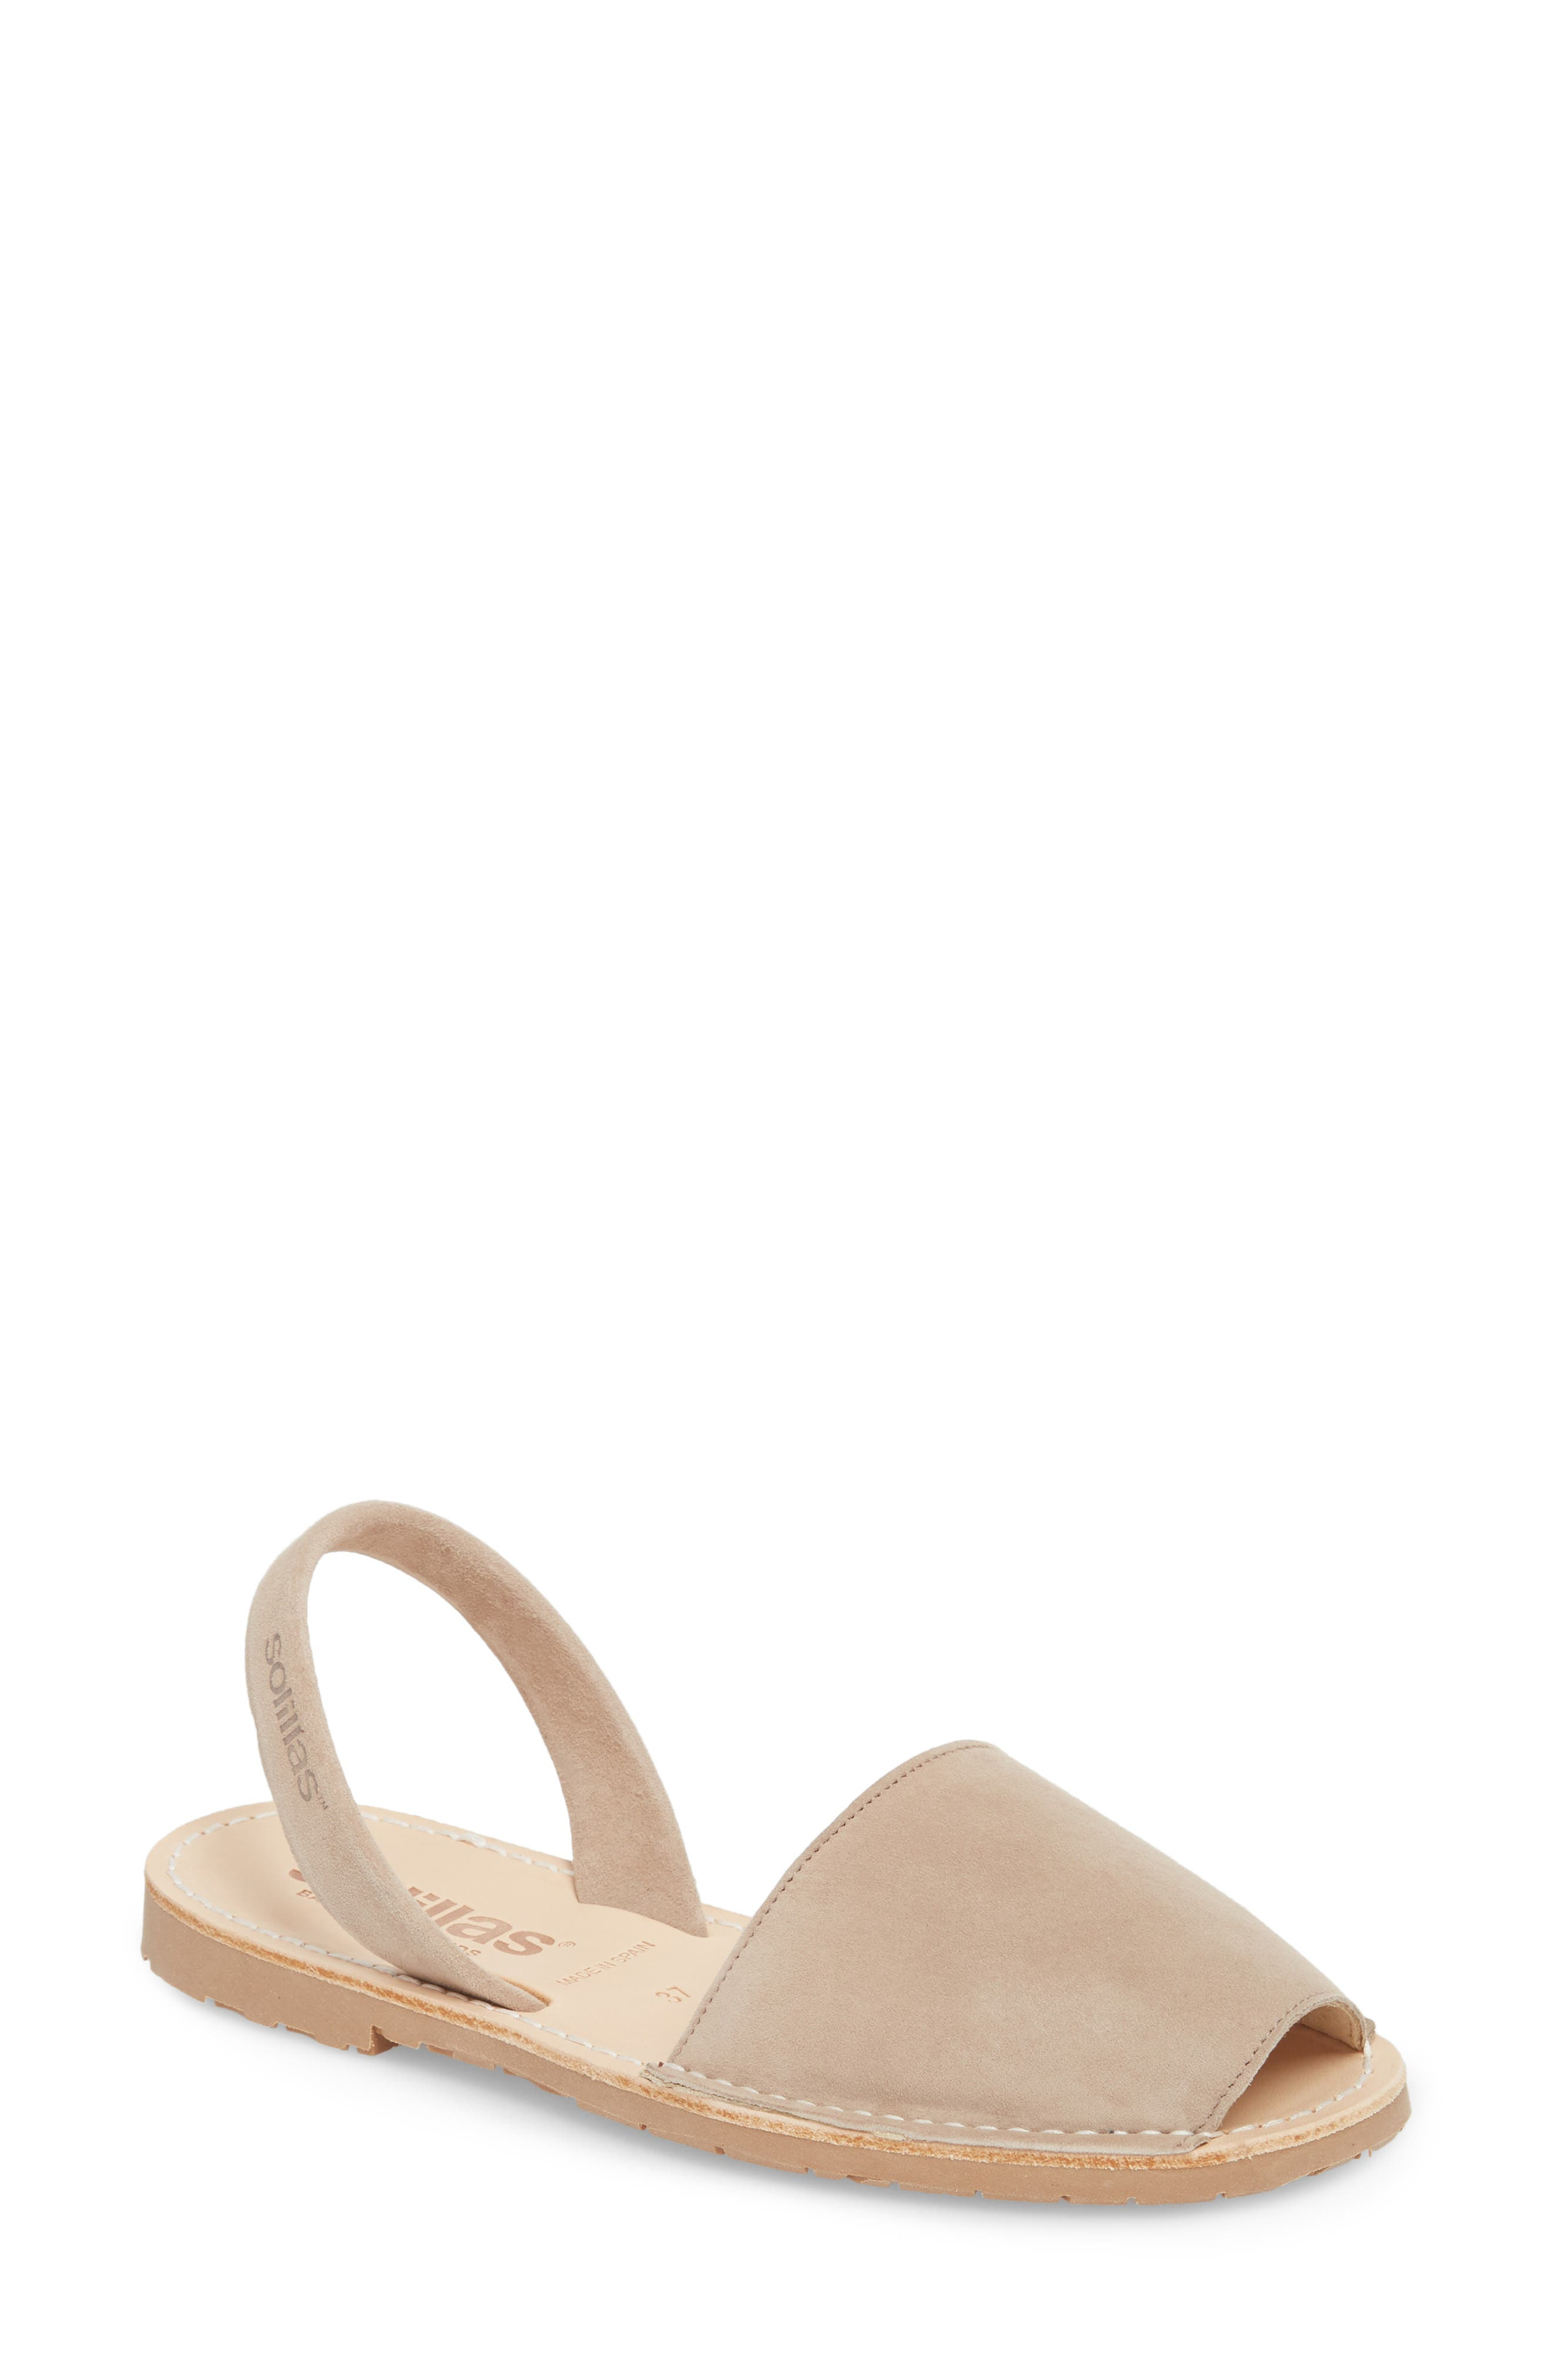 Flat Sandal,                         Main,                         color, Taupe